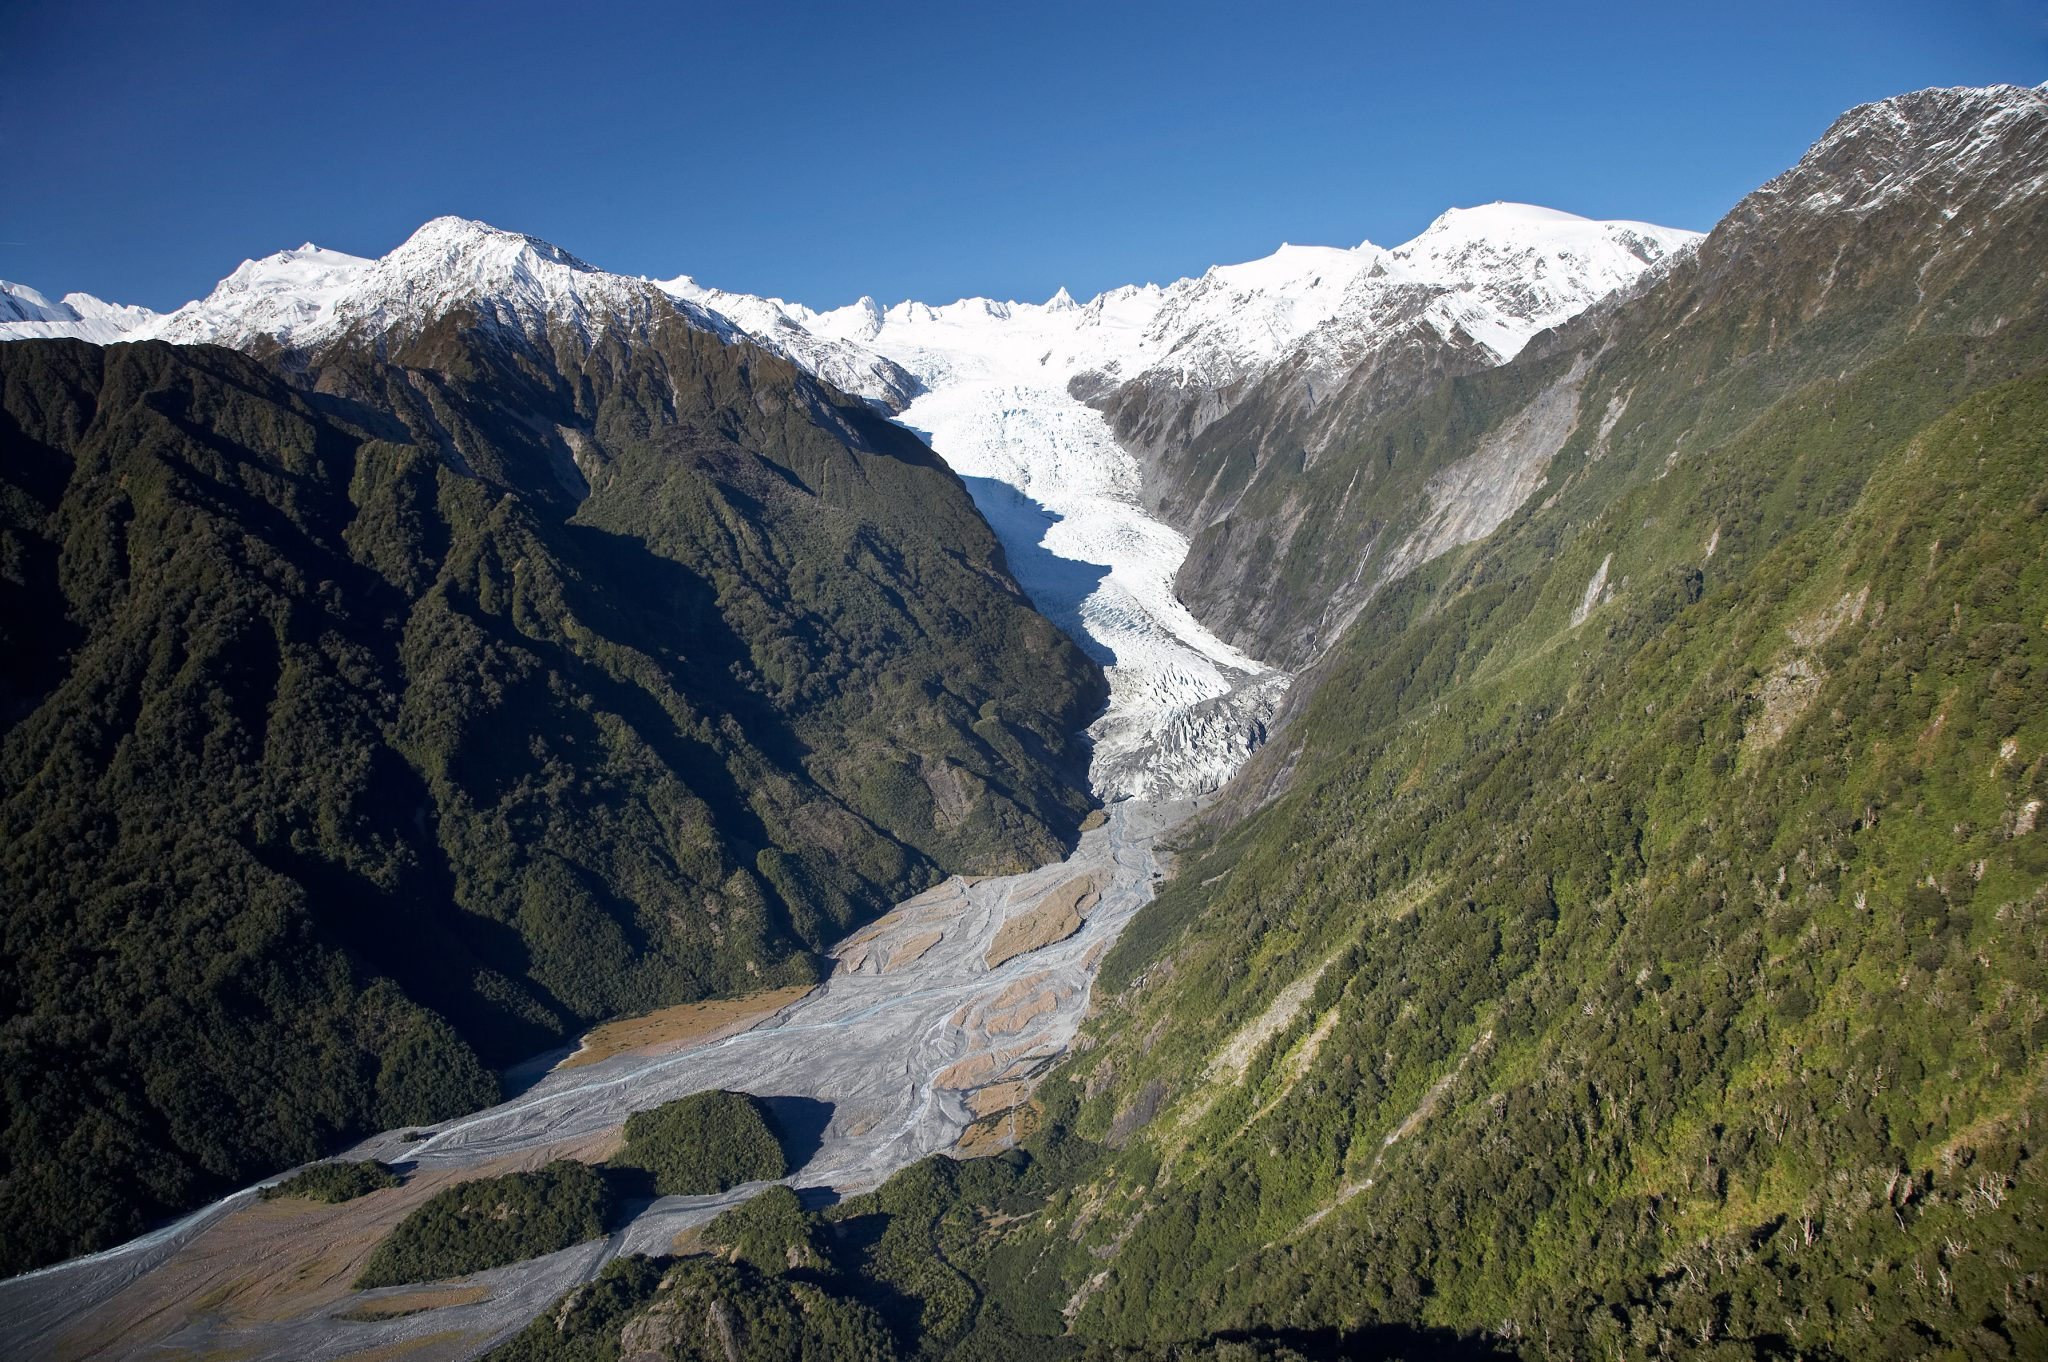 Franz Josef Glacier, West Coast, South Island, New Zealand - aerial